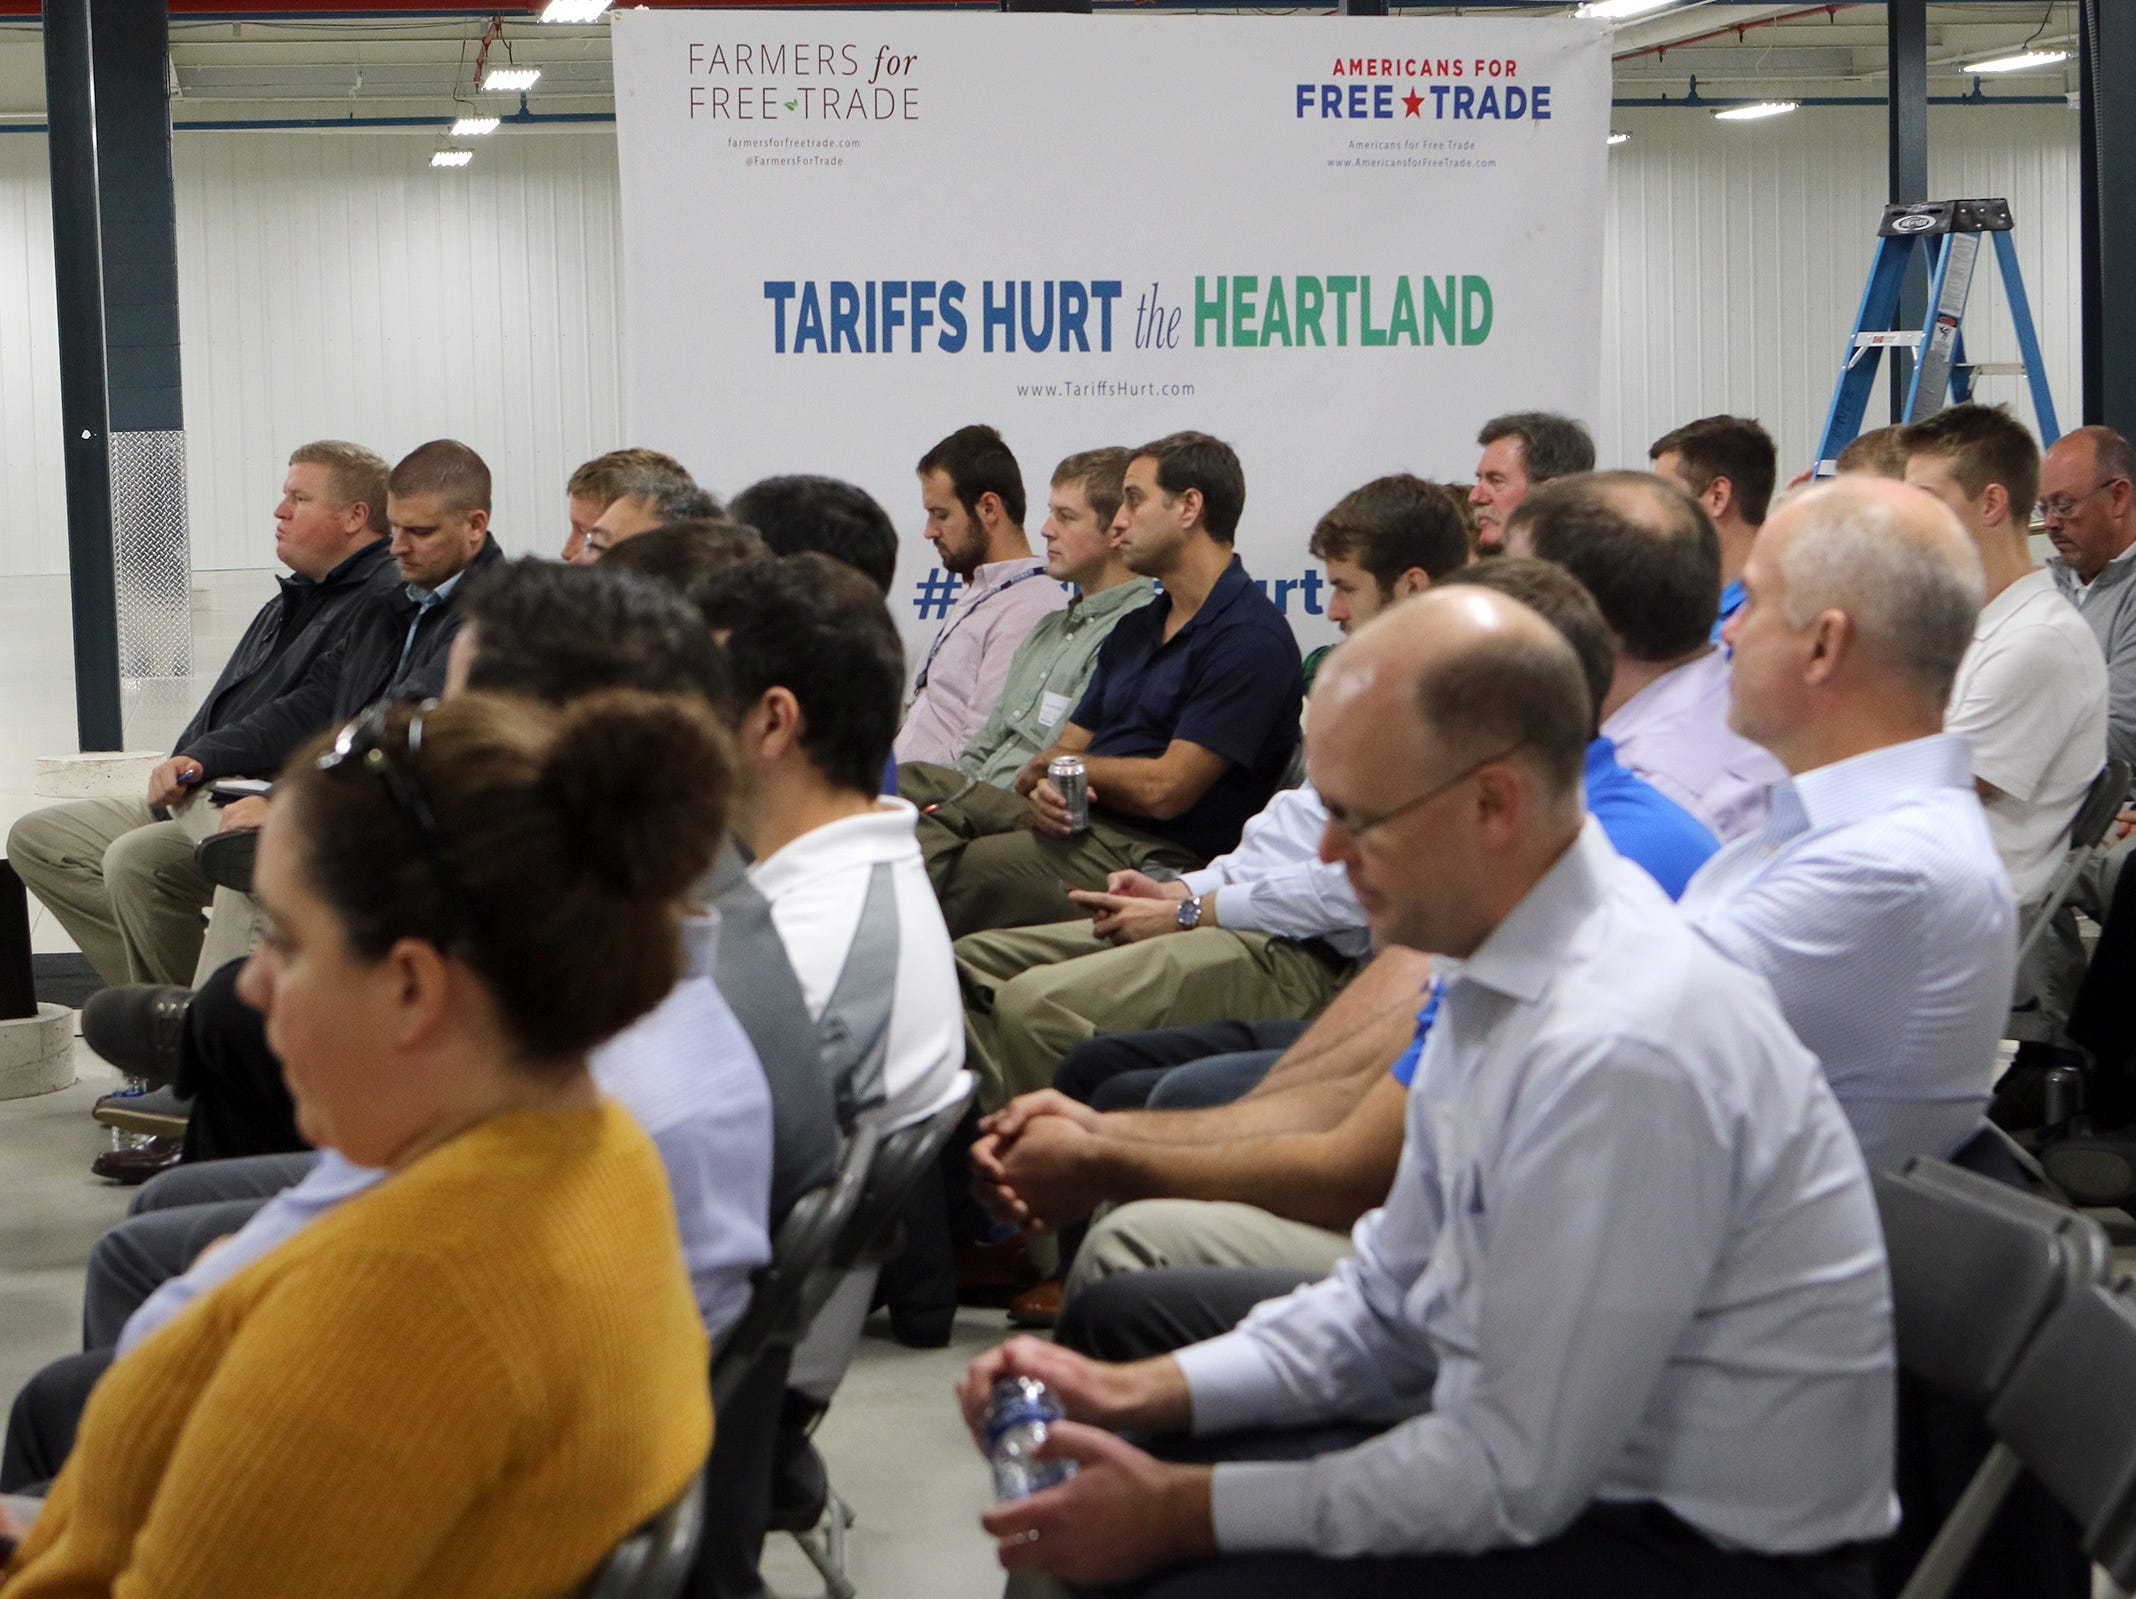 Wisconsin farmers, manufacturers and business owners and employees met at a tariff town hall at Husco International in Waukesha on Oct. 25. A group of panelists discussed the real-world impact of tariffs on Wisconsin businesses and farmers.